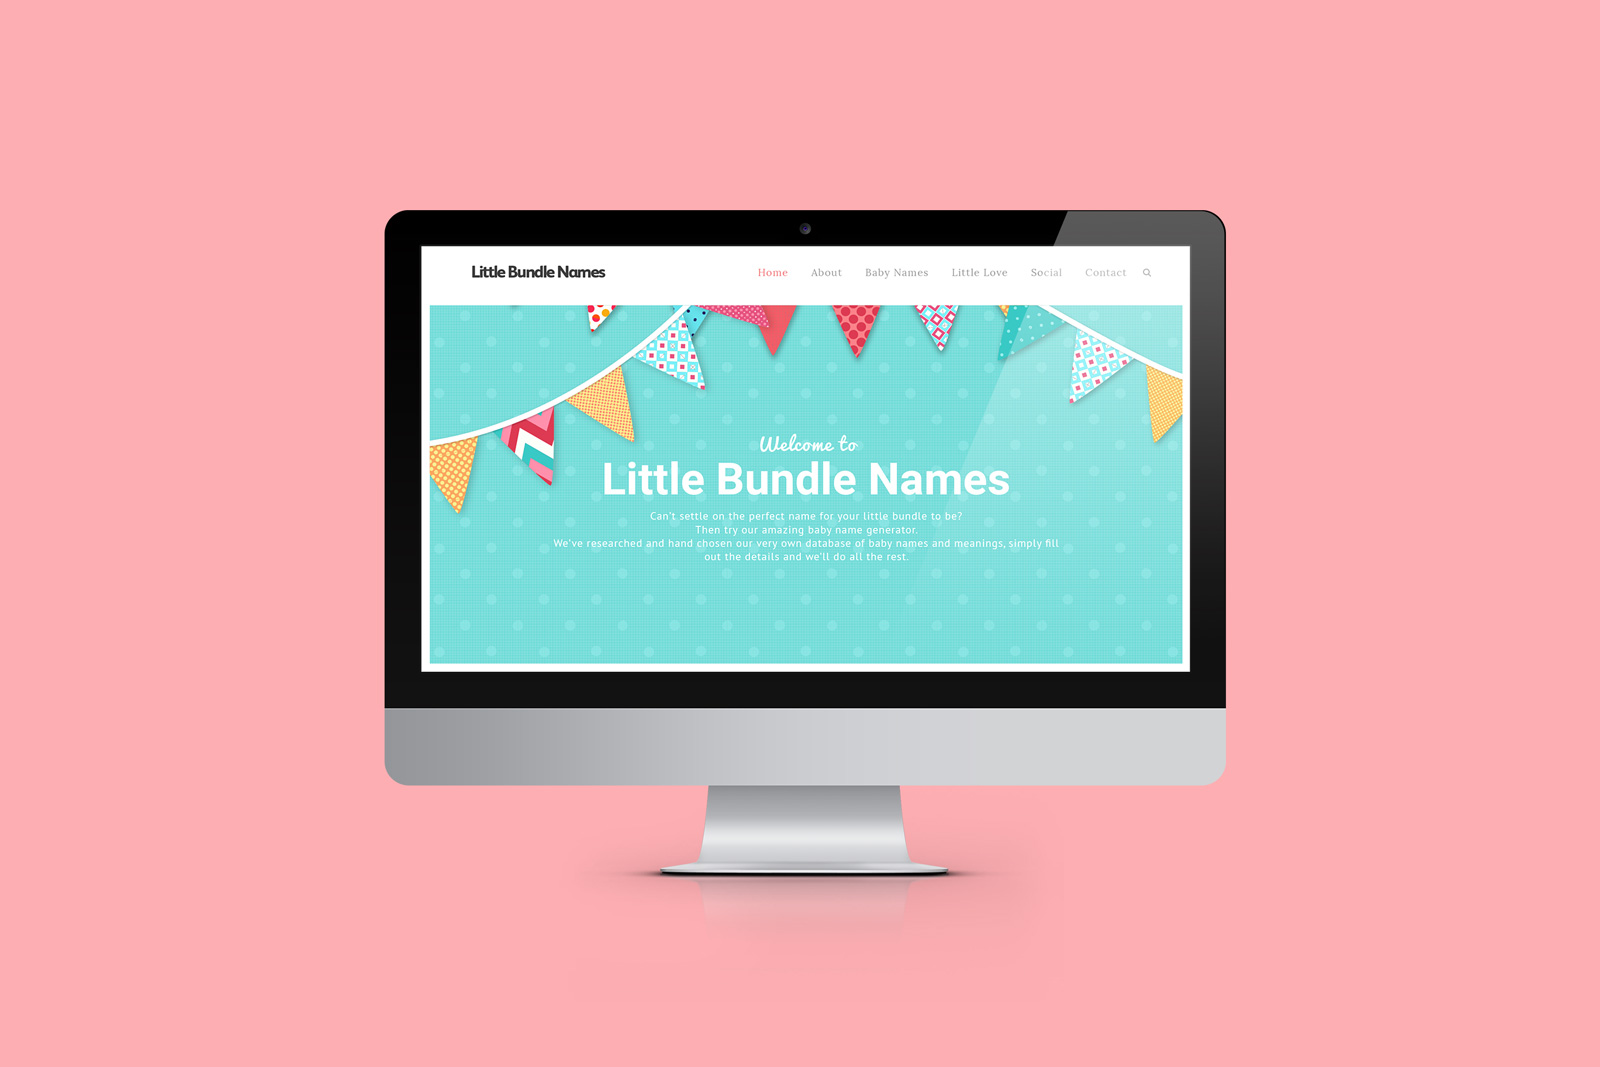 Little Bundle Names - Colm O'Connor